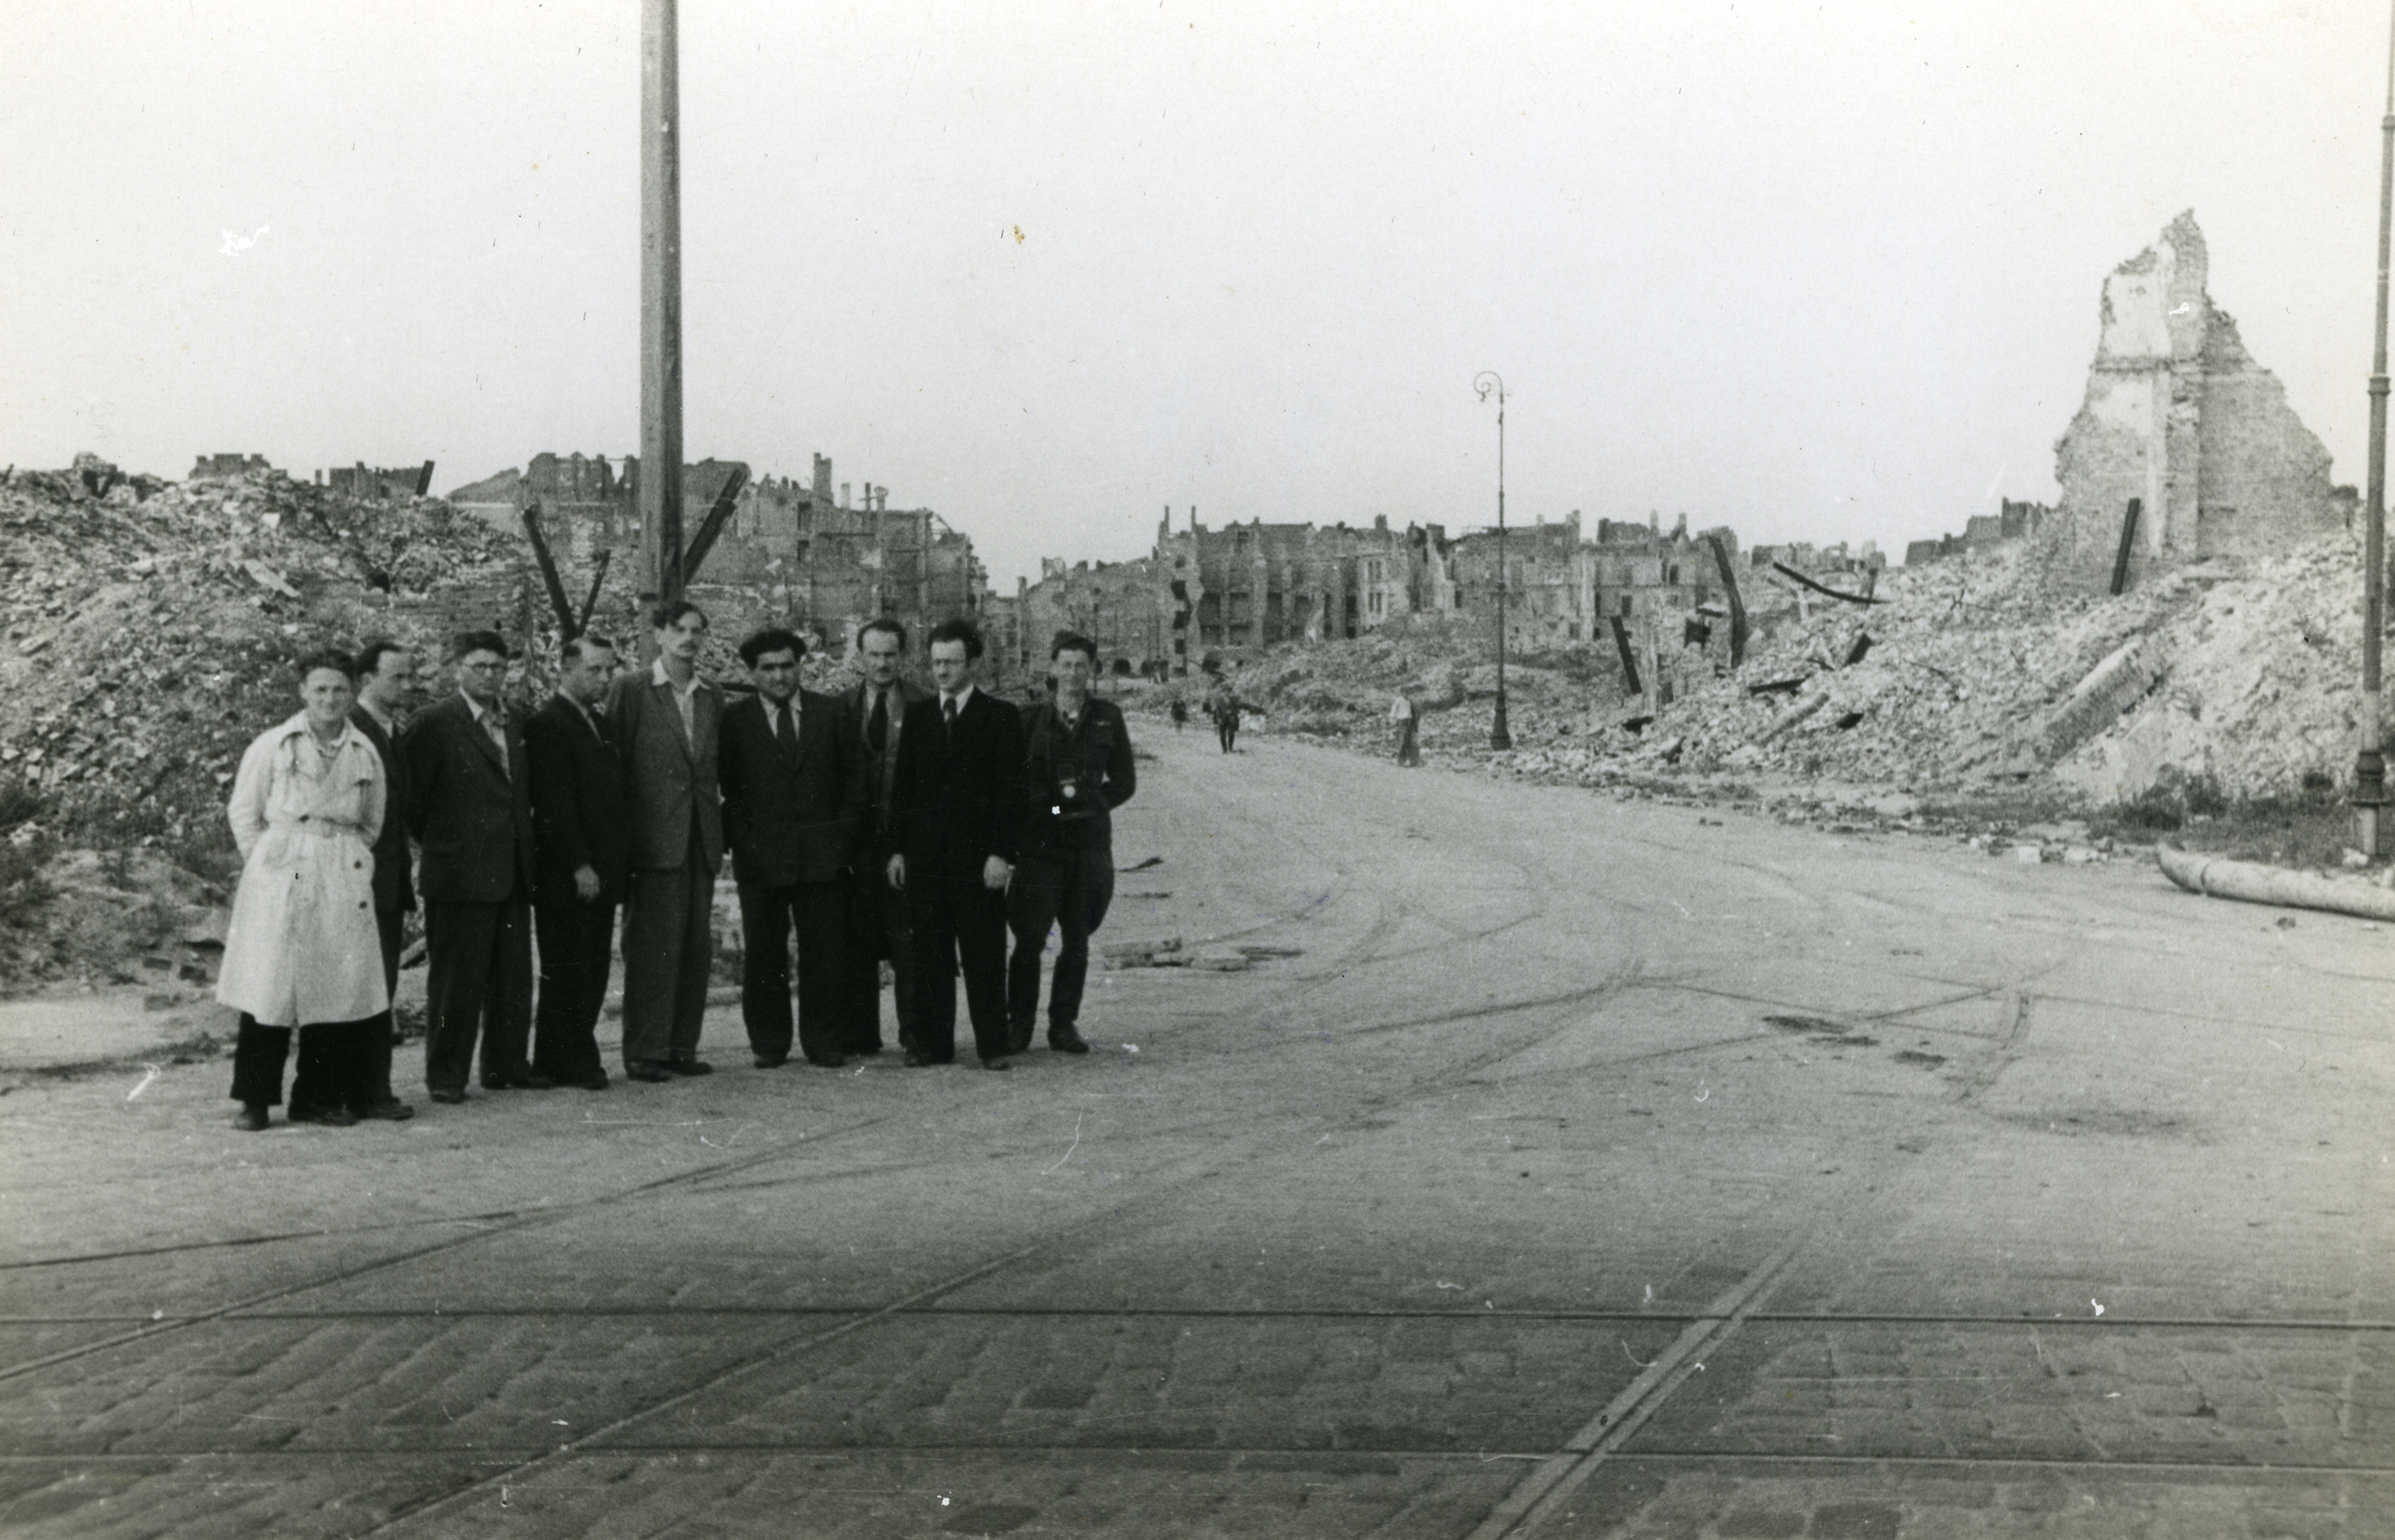 Group portrait of Polish Jewish intellectual and cultural leaders standing amidst the ruins (possibly in the Warsaw ghetto).  Among those pictured are Professor Avram Novershtern (fourth from the left) and Yitzkah (Antek) Zuckerman (fifth from the left).   Novershtern survived the war and became a prominent Israeli Yiddish scholar.